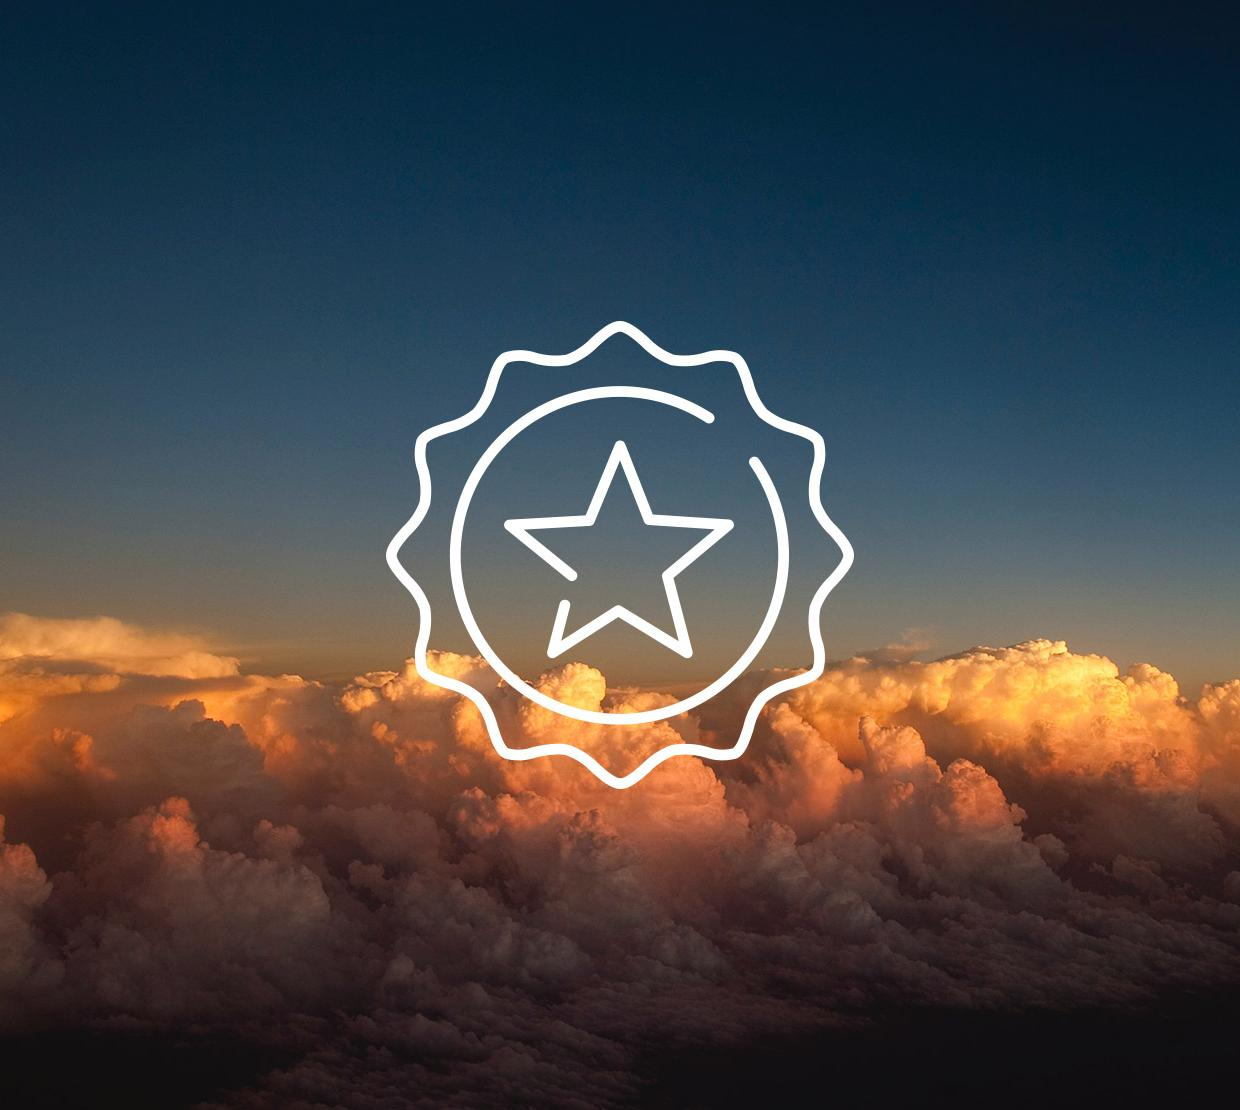 Star icon above clouds at sunset